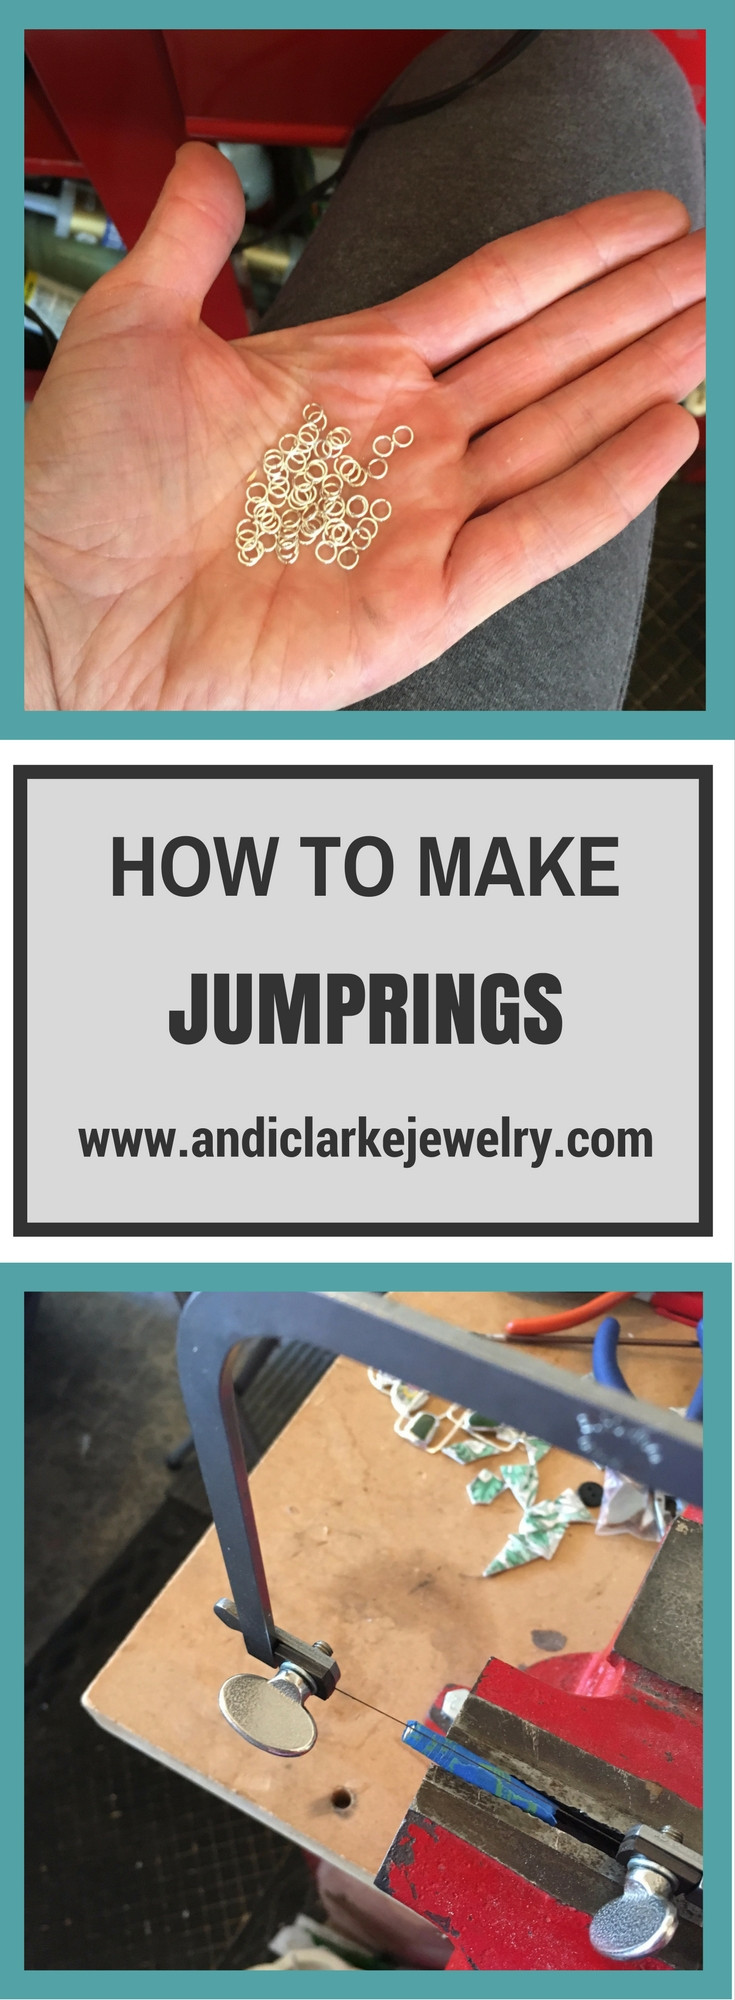 How to make jewelry jump rings